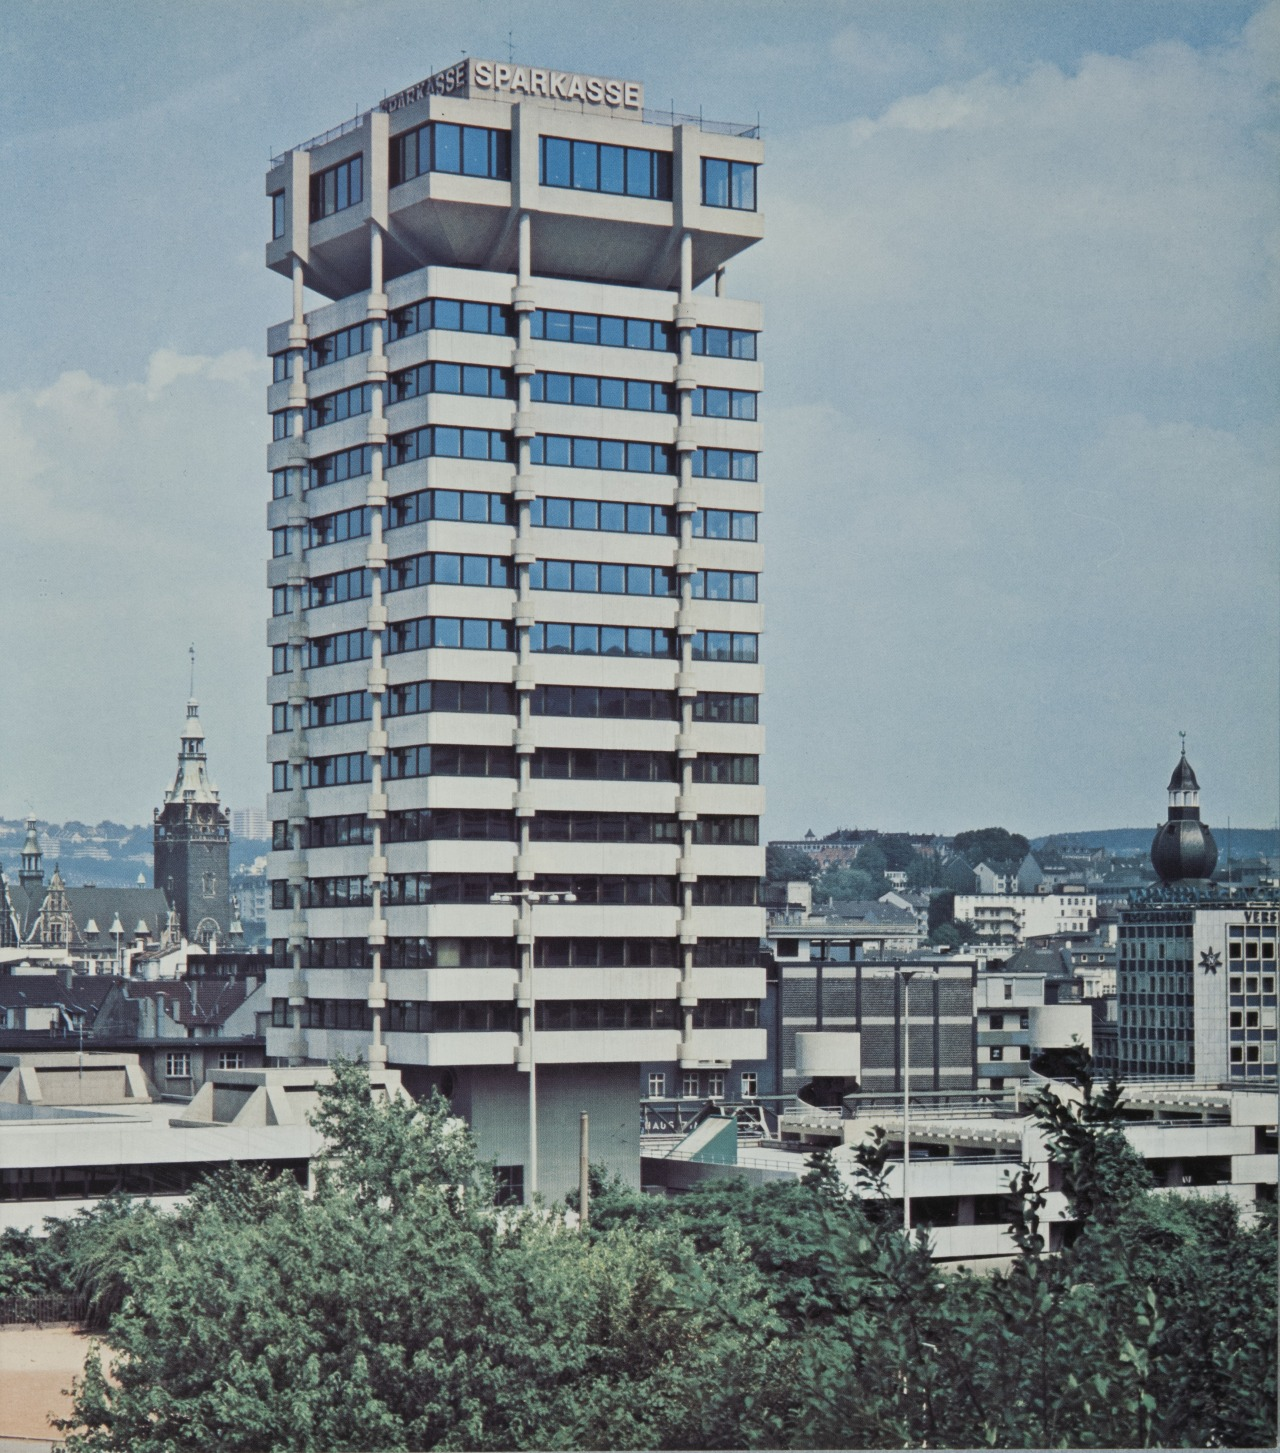 Schneiderei Wuppertal Municipal Savings Bank 1969 73 In Wuppertal German